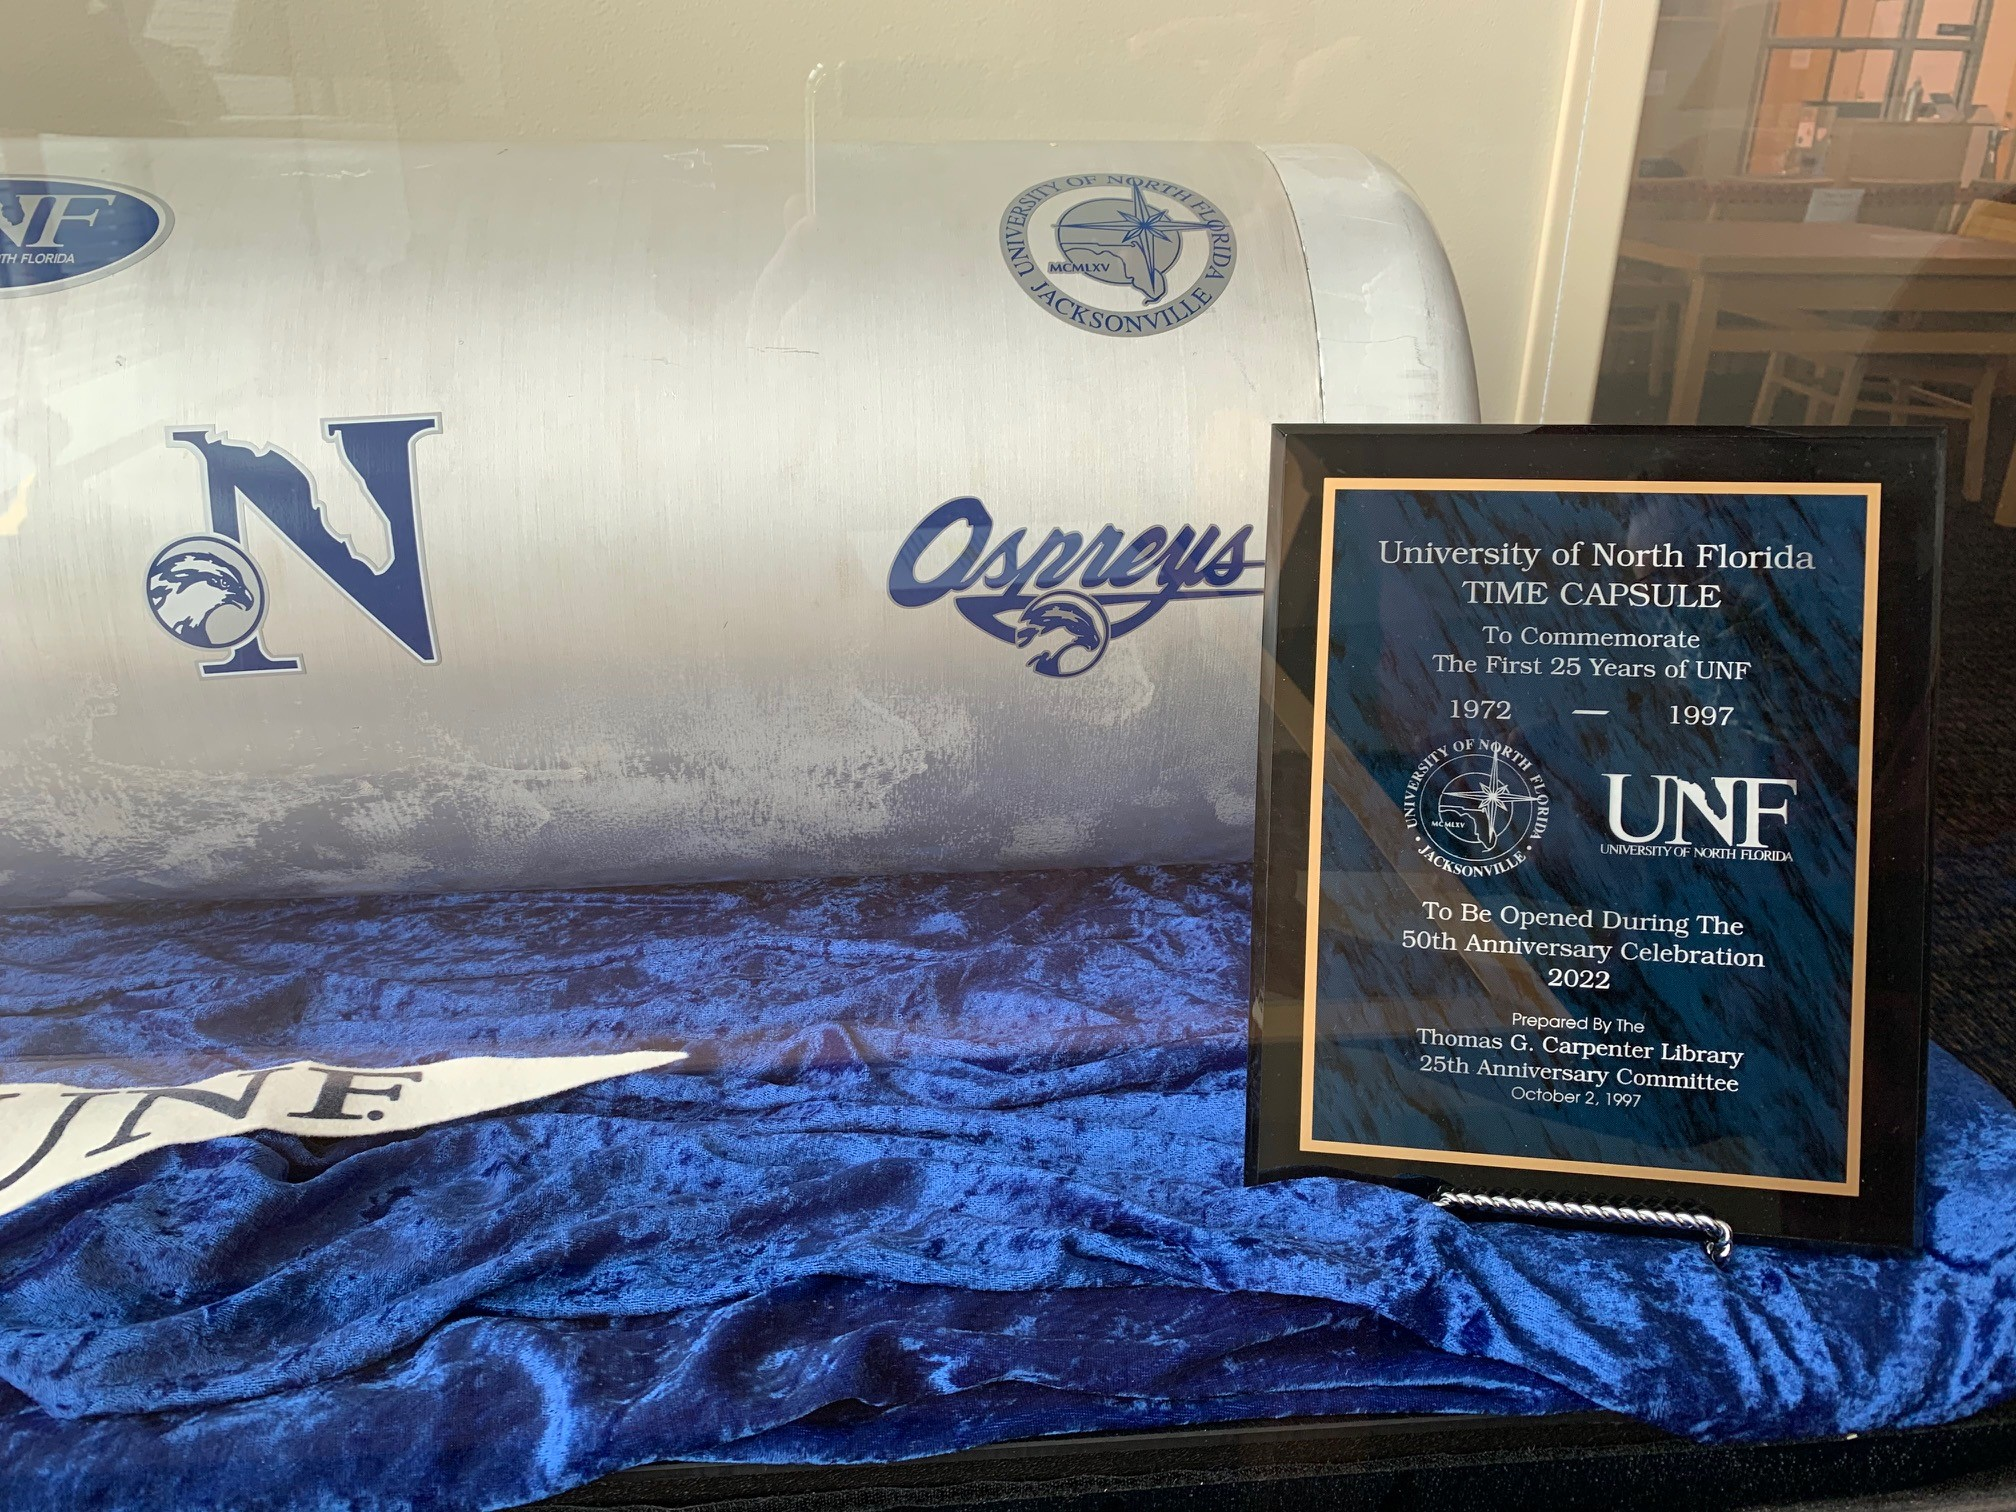 Photo of the 1972-1997 UNF Time Capsule, to be opened during the 50th Anniversary Celebration in 2022.